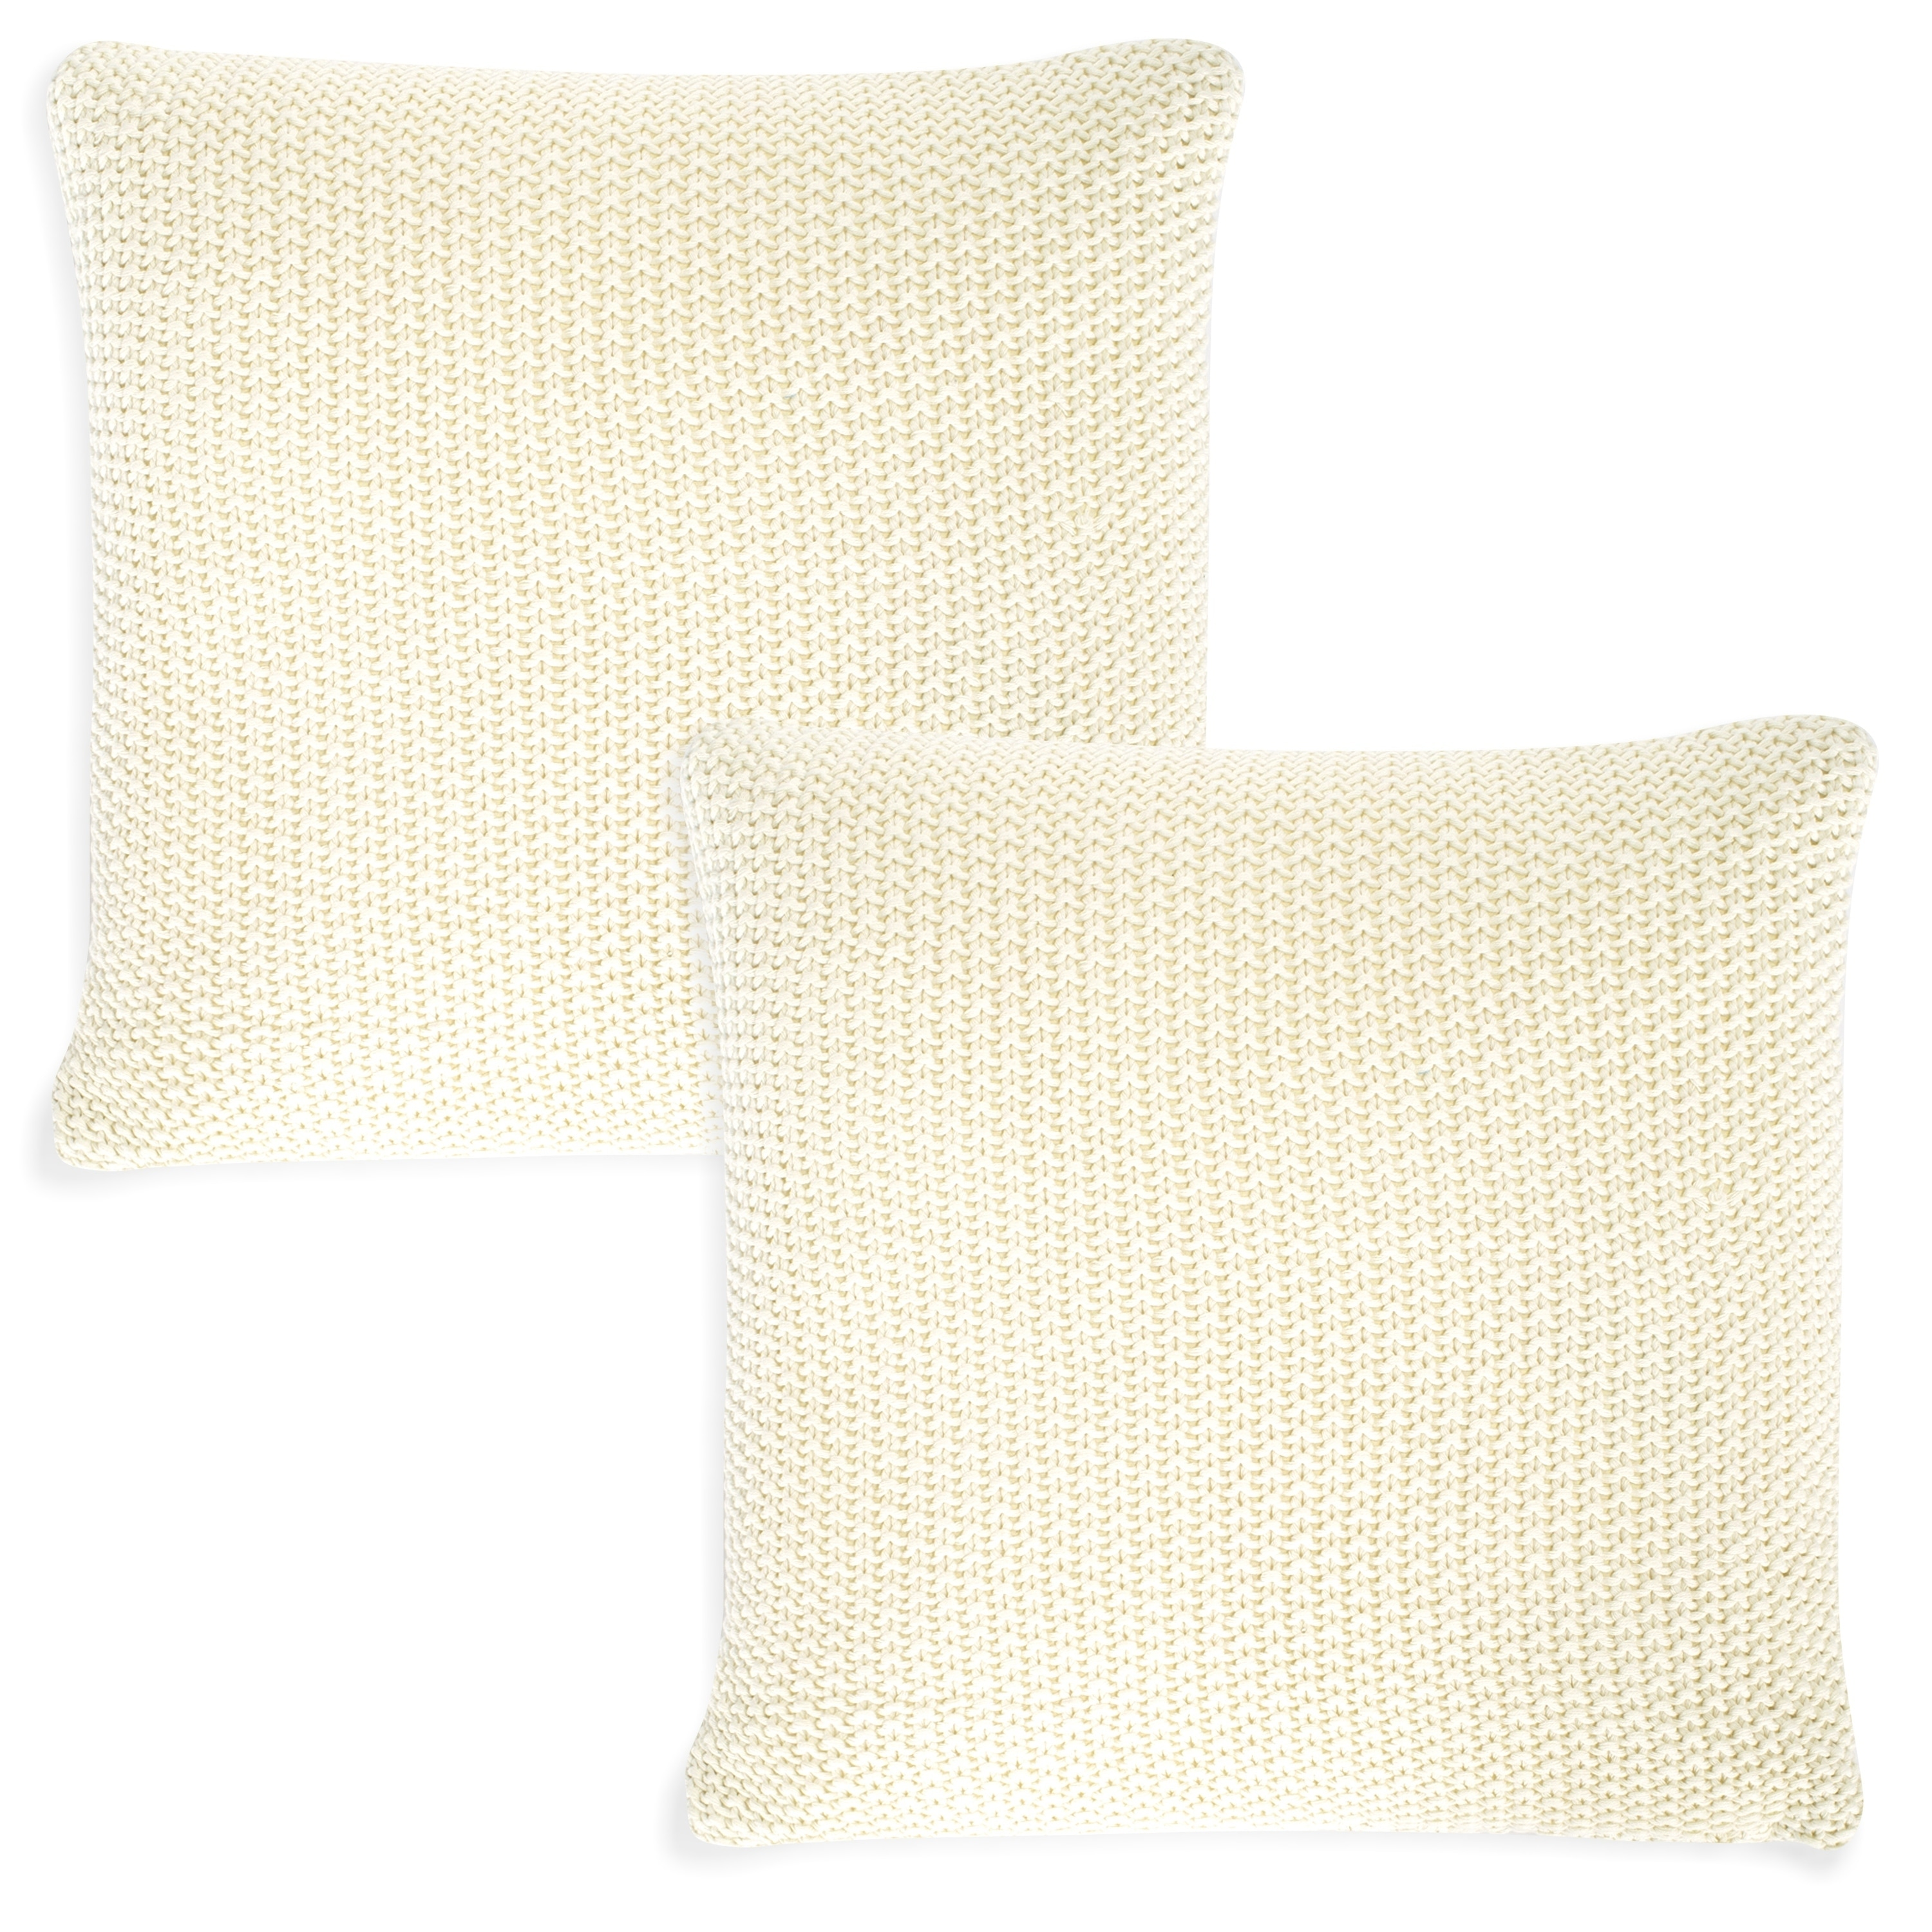 Poly And Bark Jozy Throw Pillow Set Of 2 Overstock 30729047